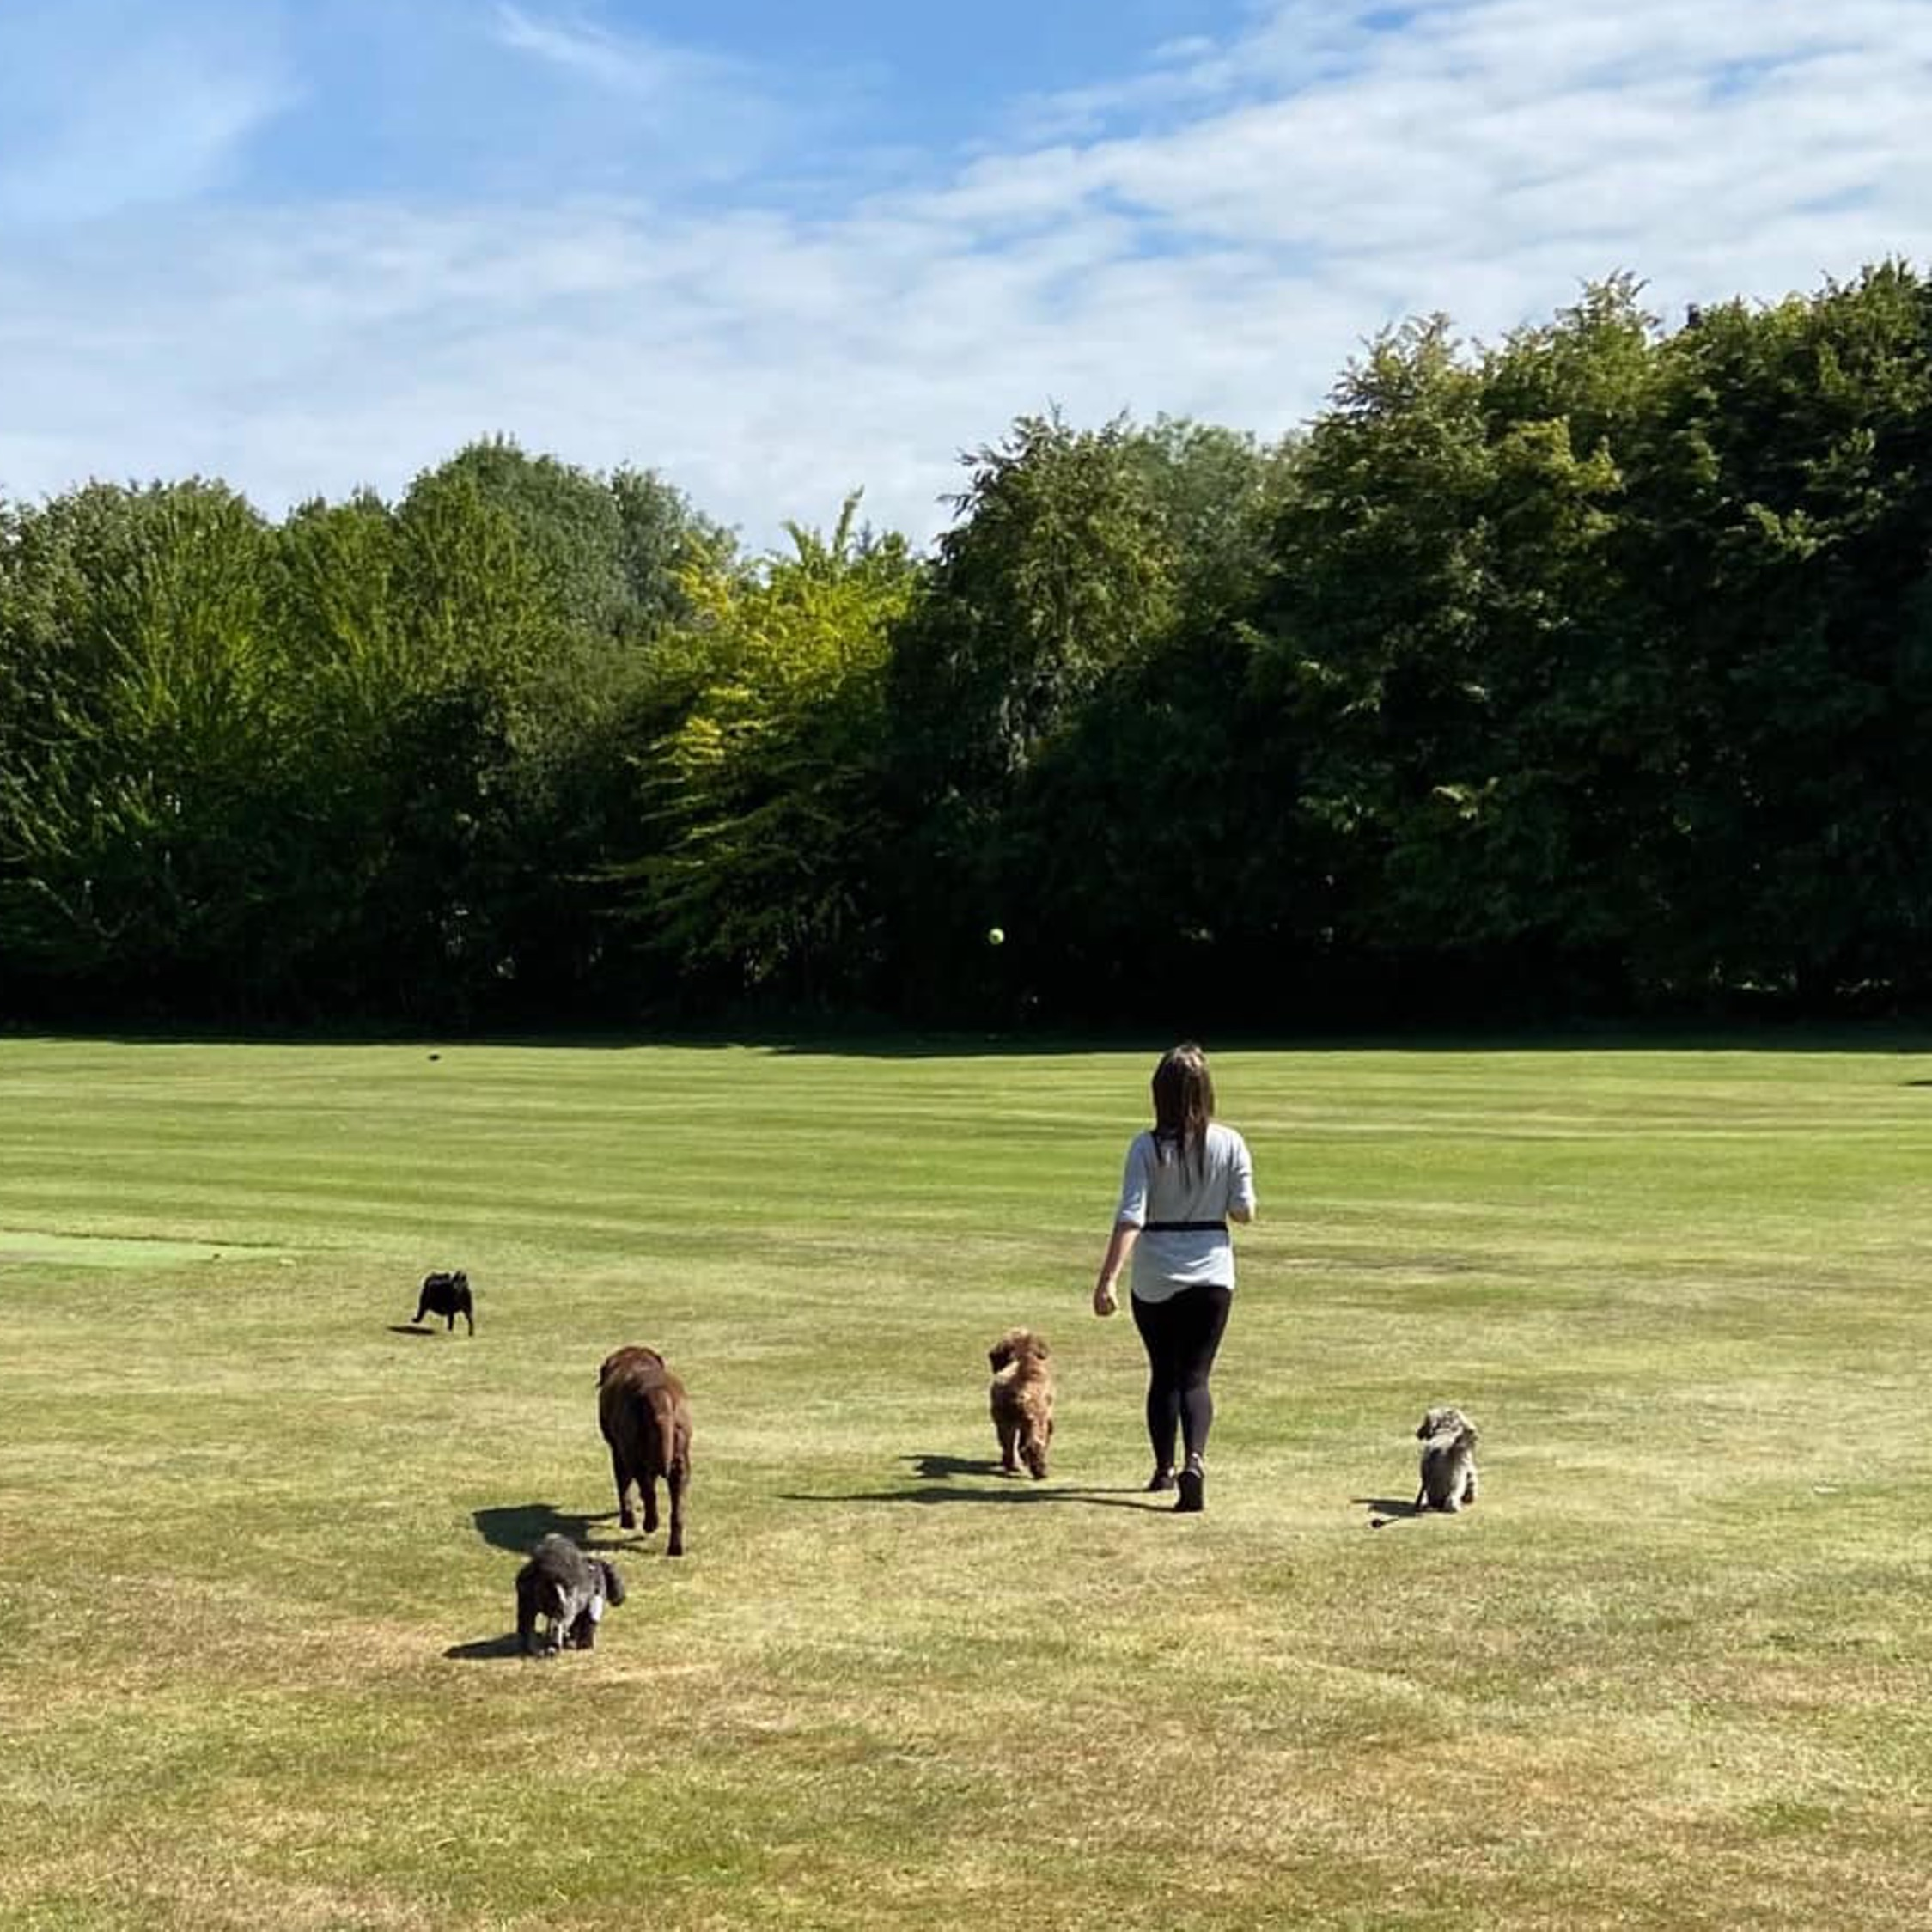 herts hiking hounds dog walking walker and training abbots kings langley hertfordshire pet photography4